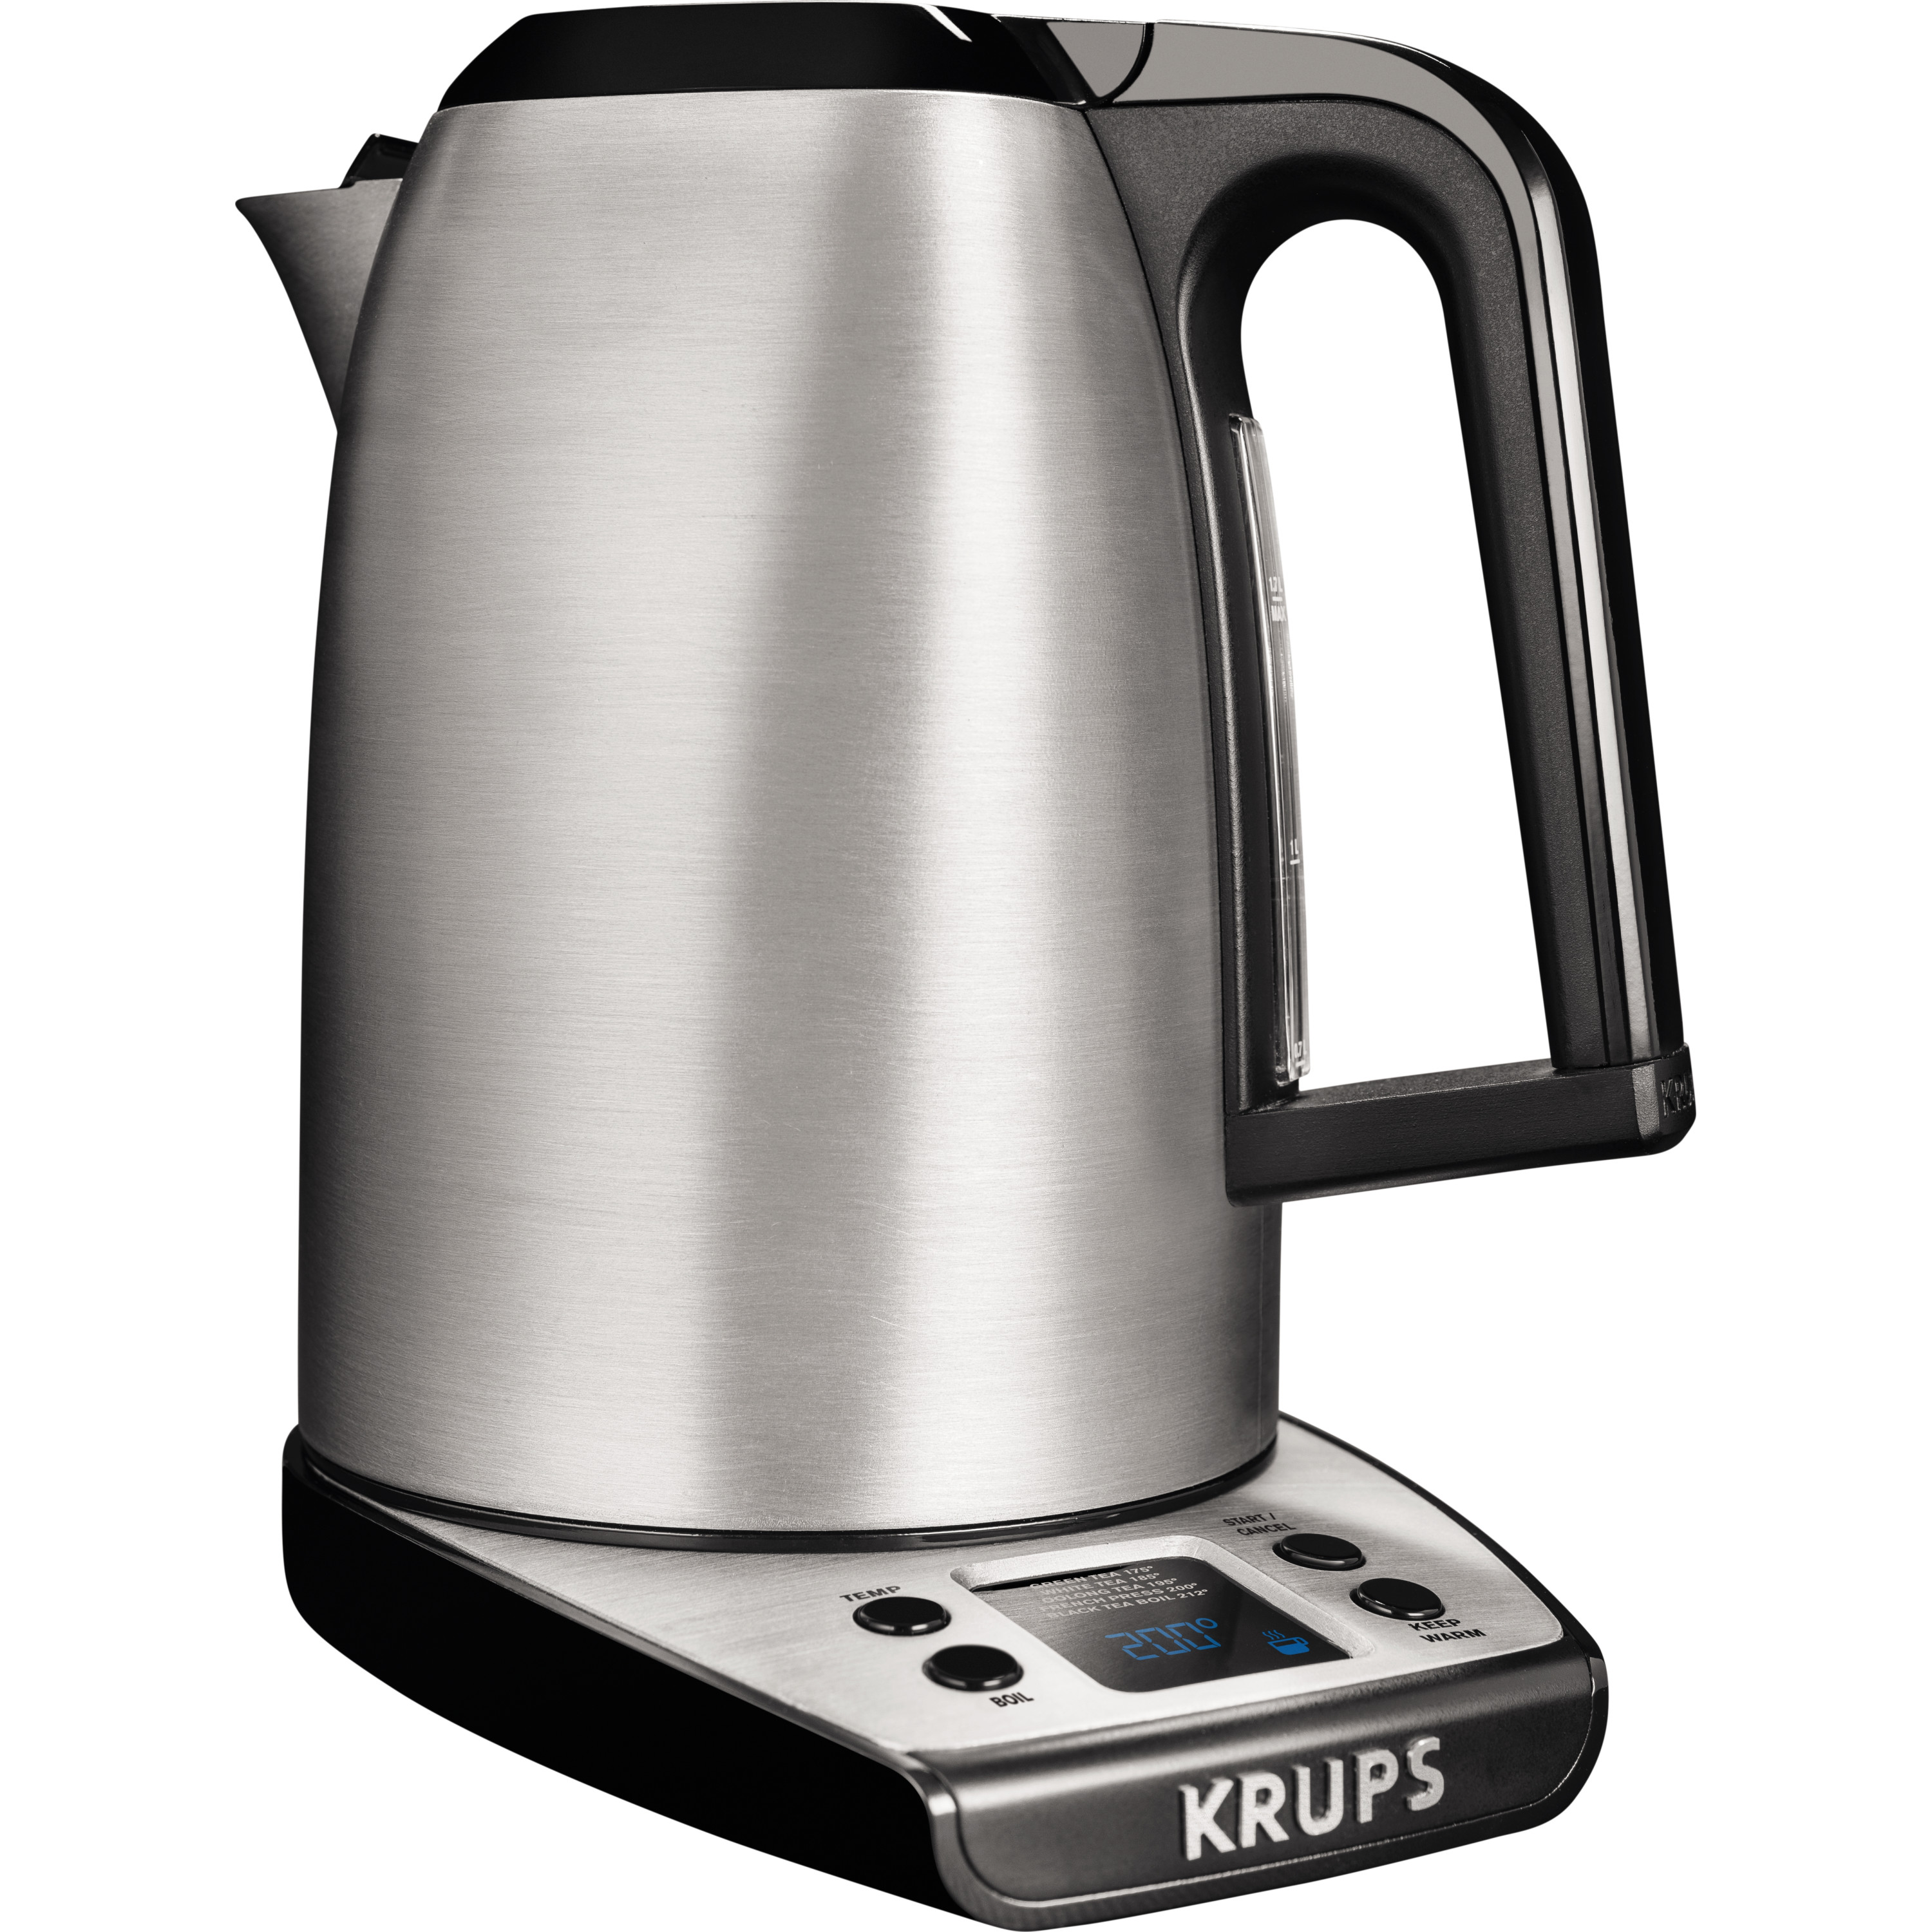 KRUPS, Electric Kettle with adjustable temperature, Stainless Steel BW314050